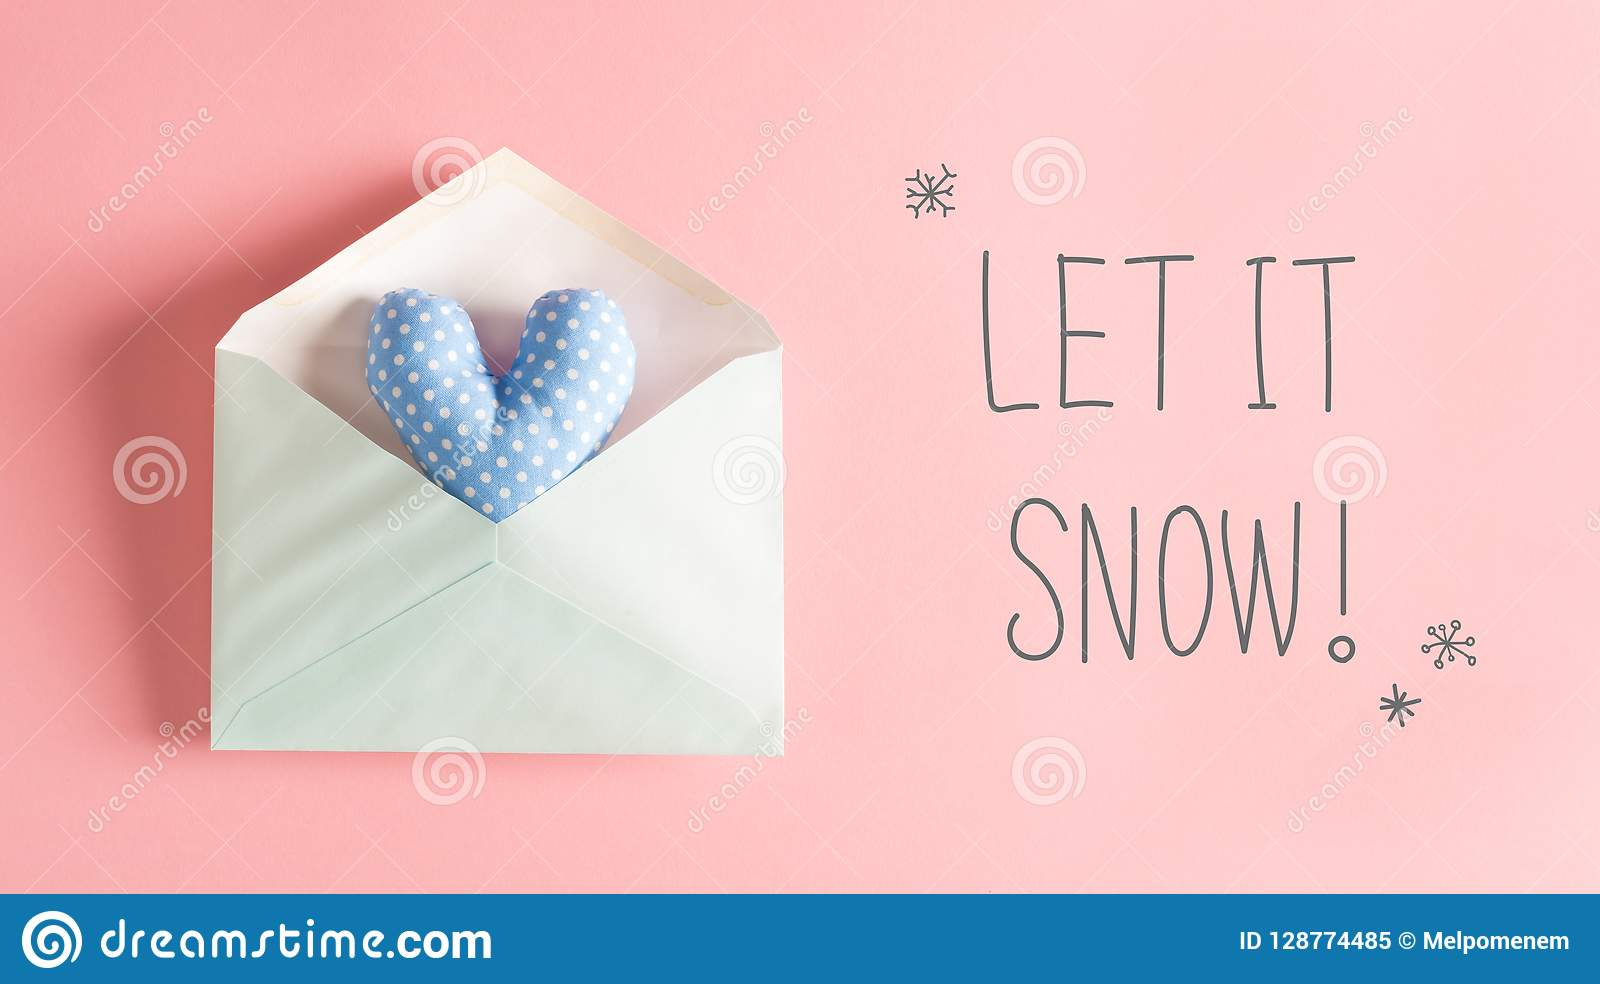 Let It Snow message with a blue heart cushion